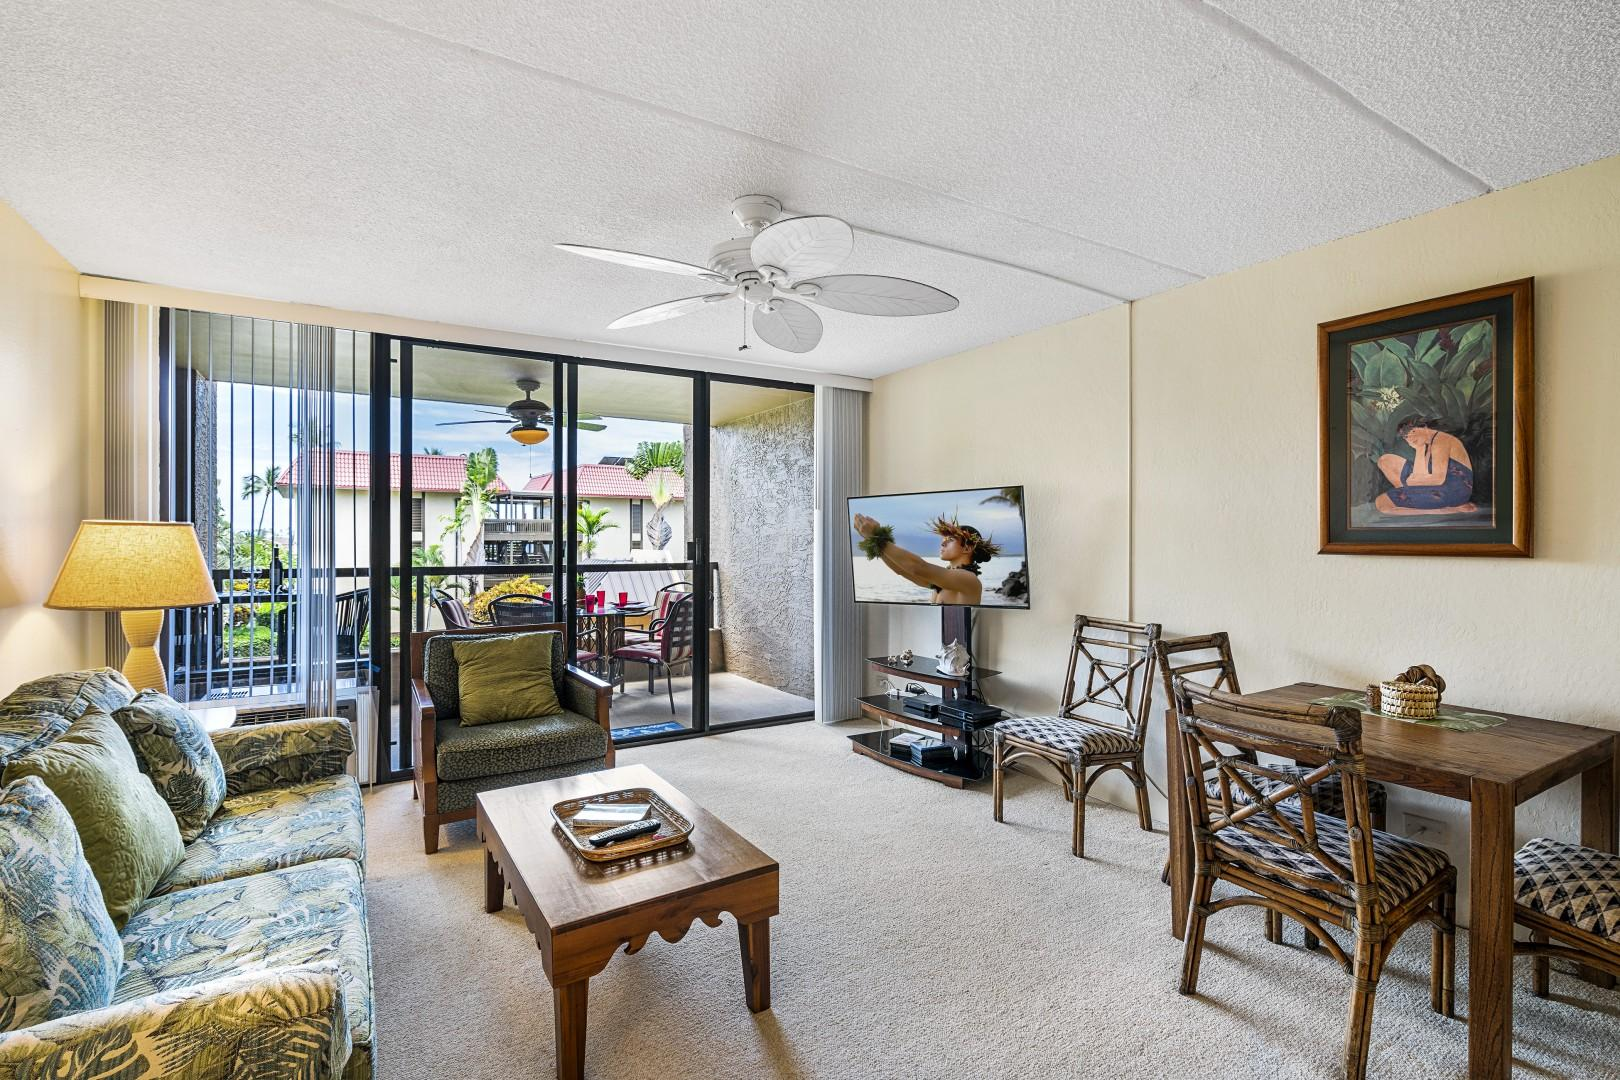 Lanai access from the air conditioned living room